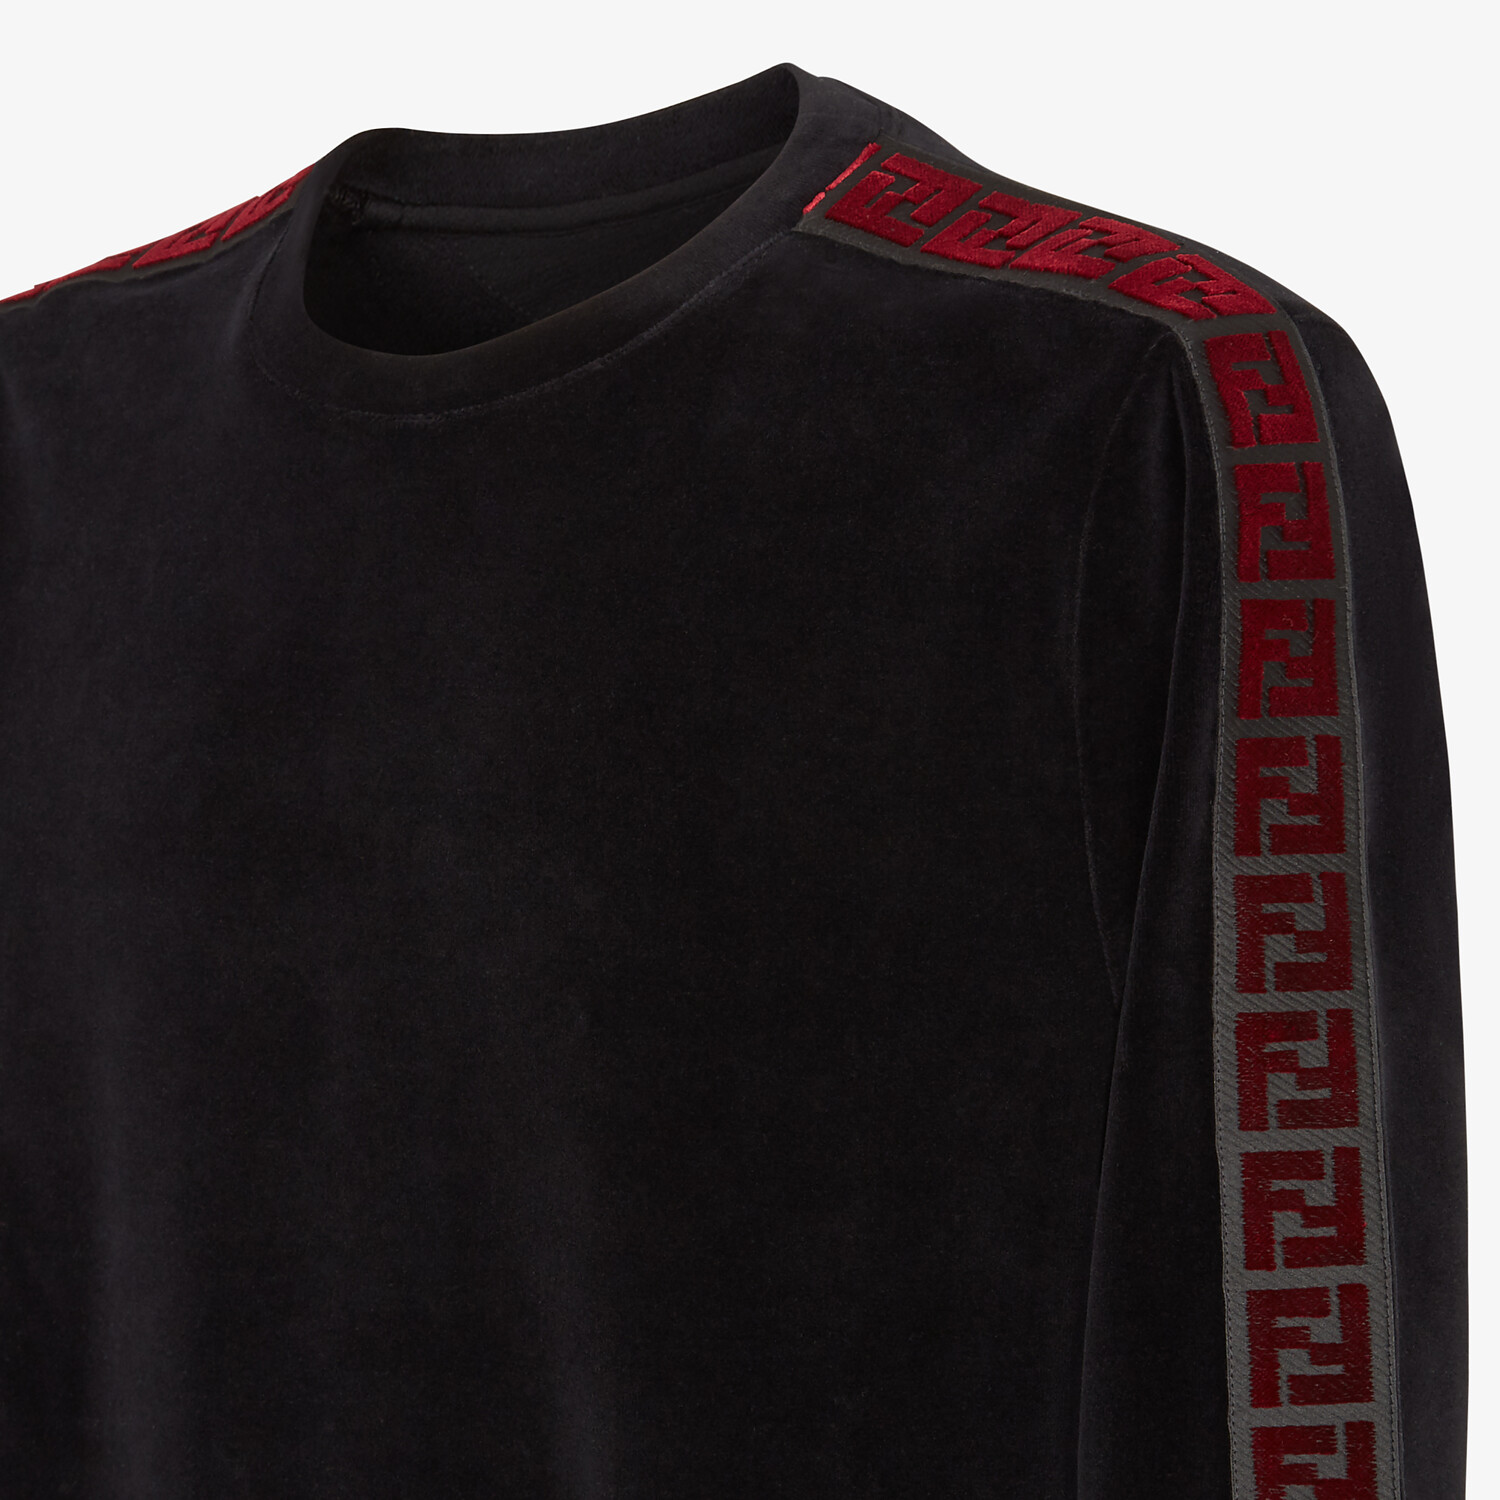 FENDI SWEATSHIRT - Sweatshirt from the Lunar New Year Limited Capsule Collection - view 3 detail